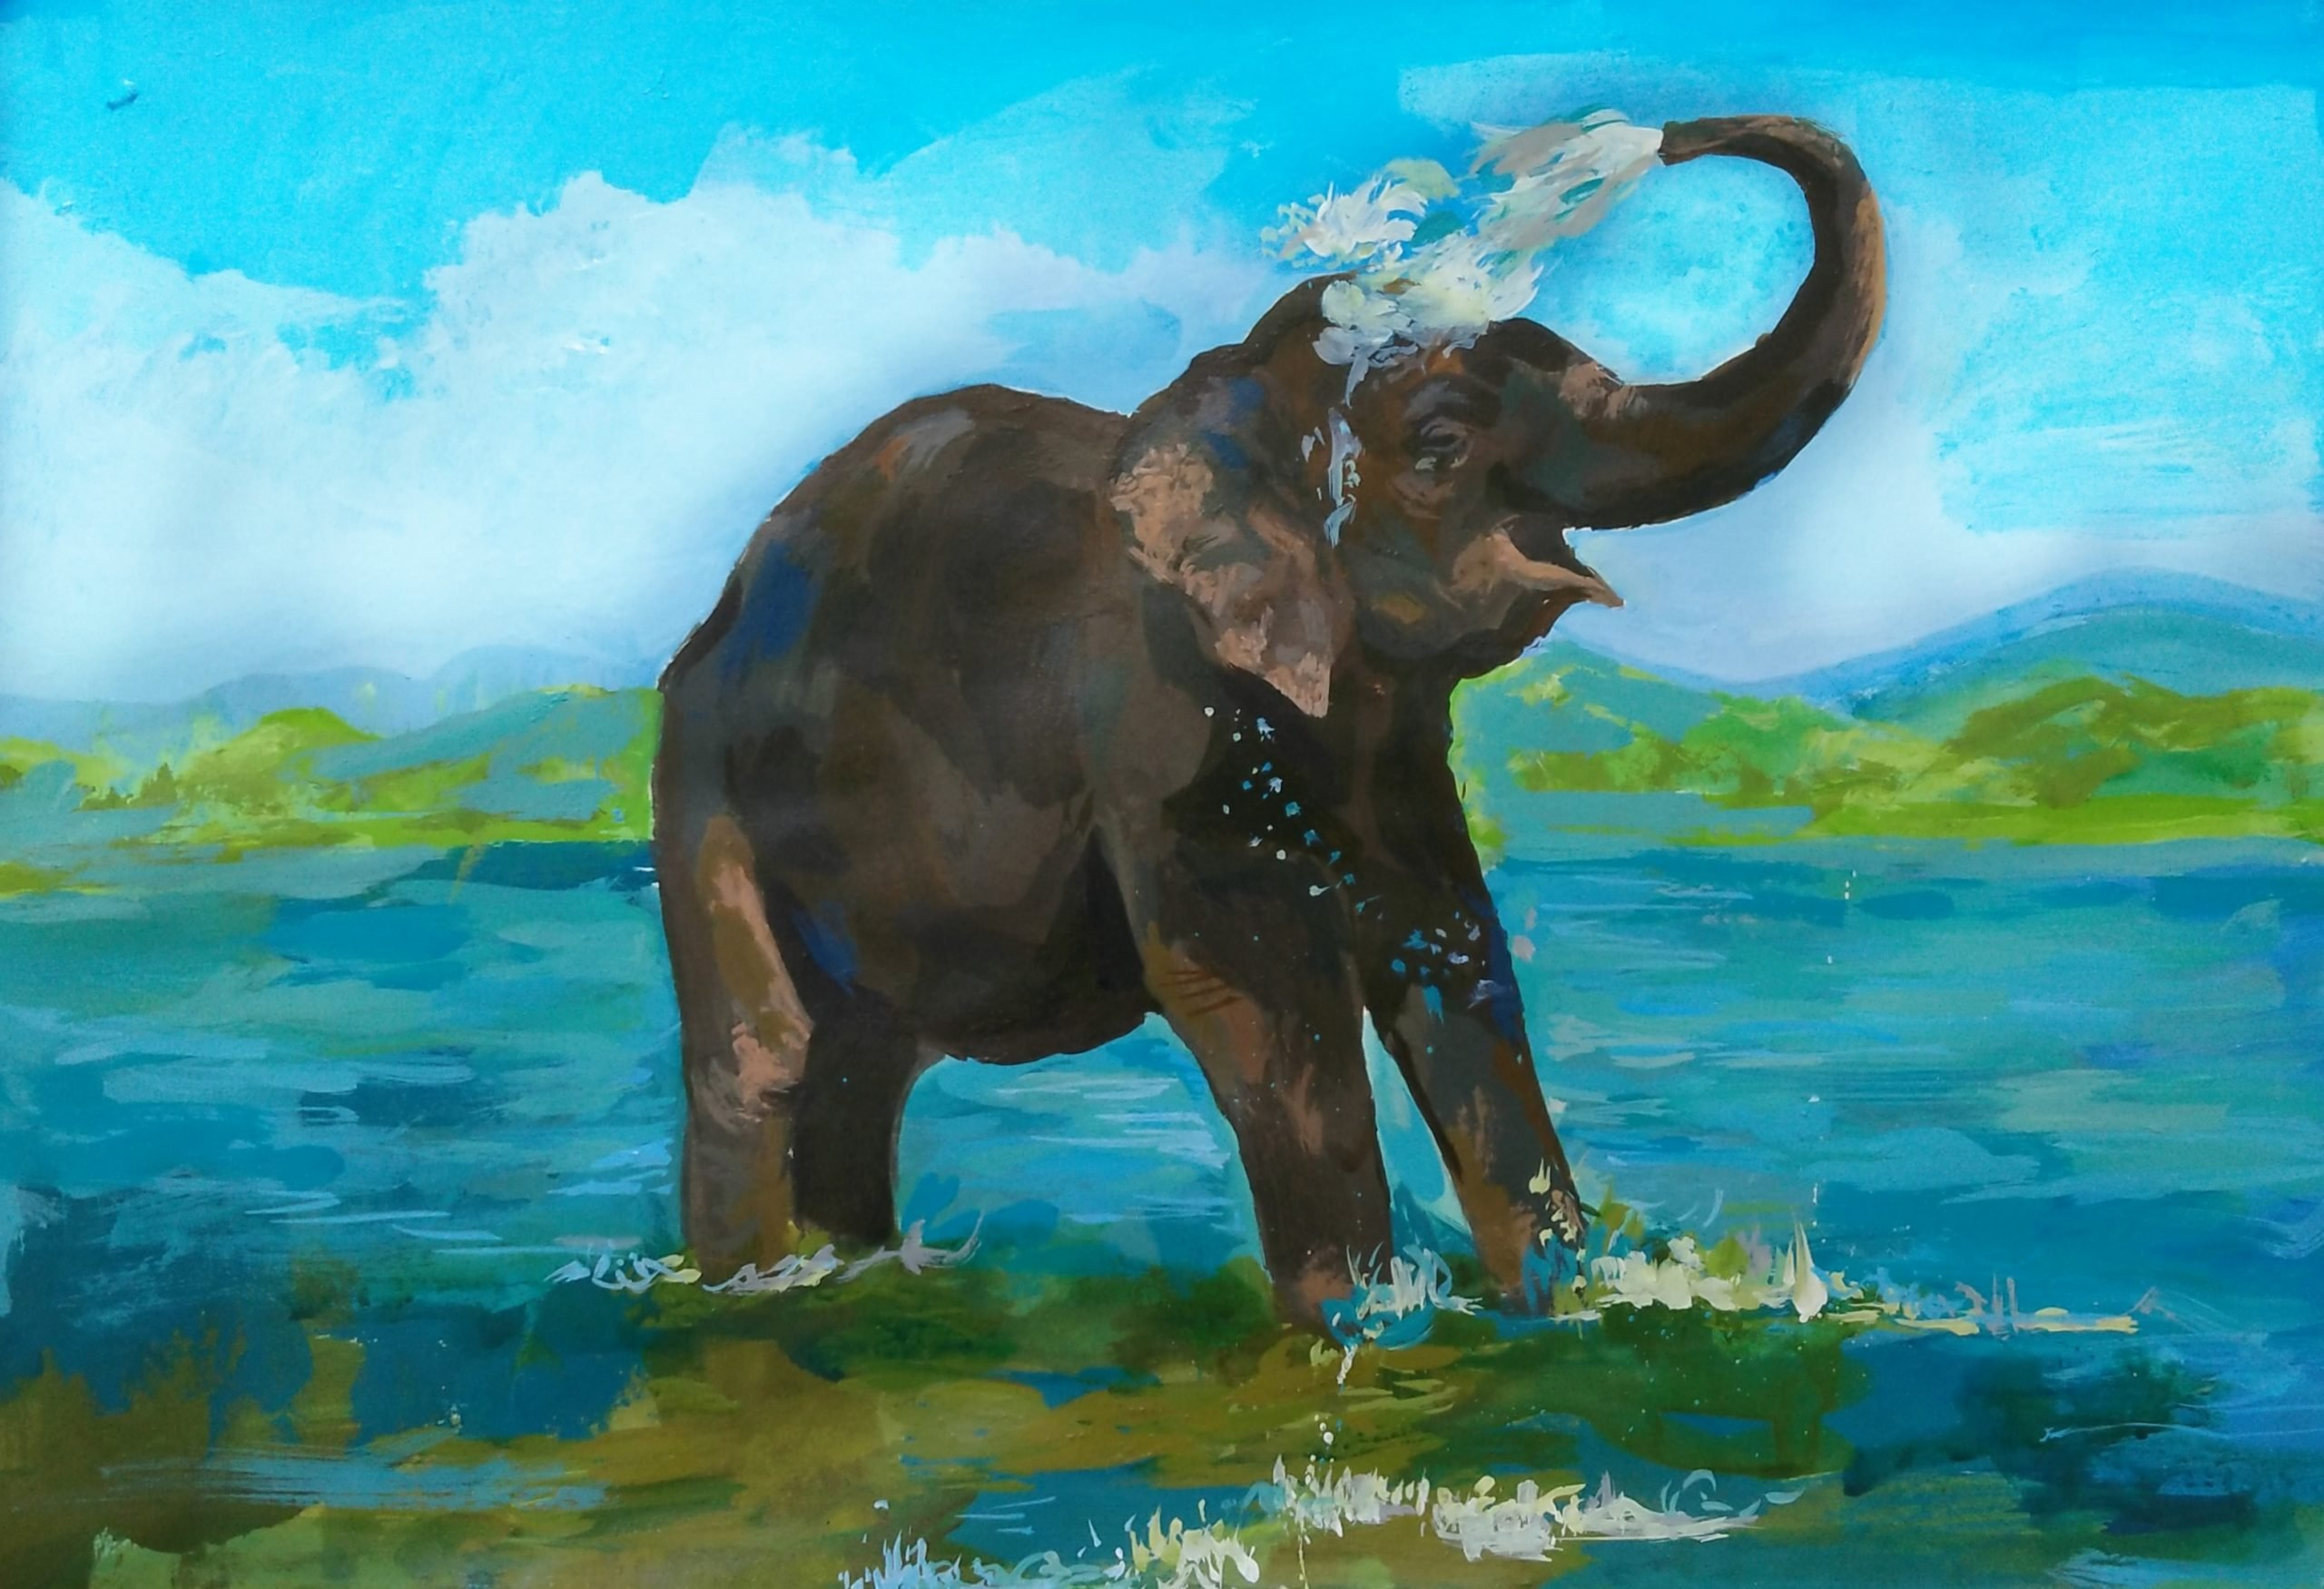 An elephant in water painting